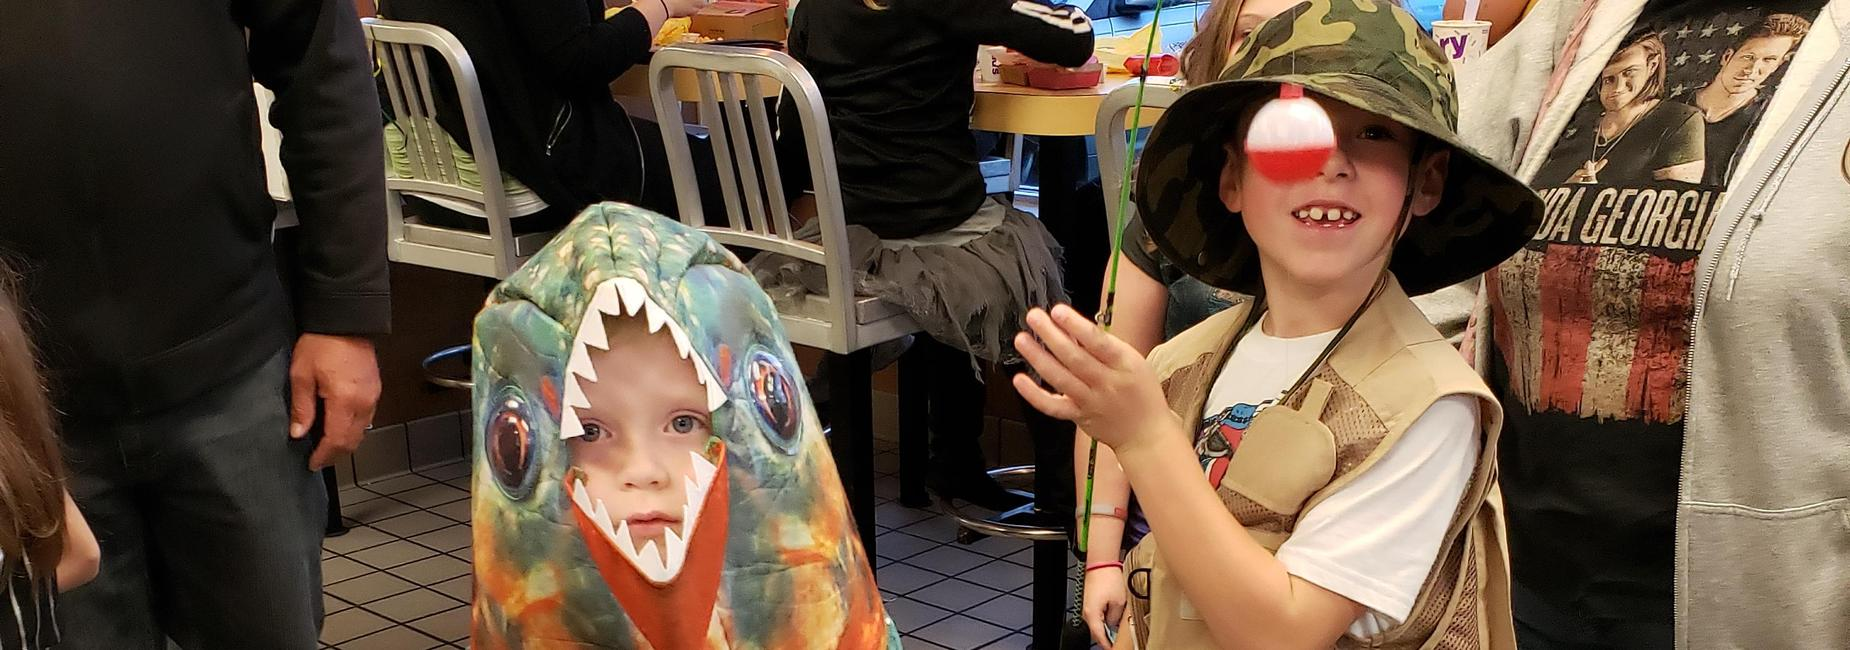 Juniata Gap students at McTeacher Night in their costumes.